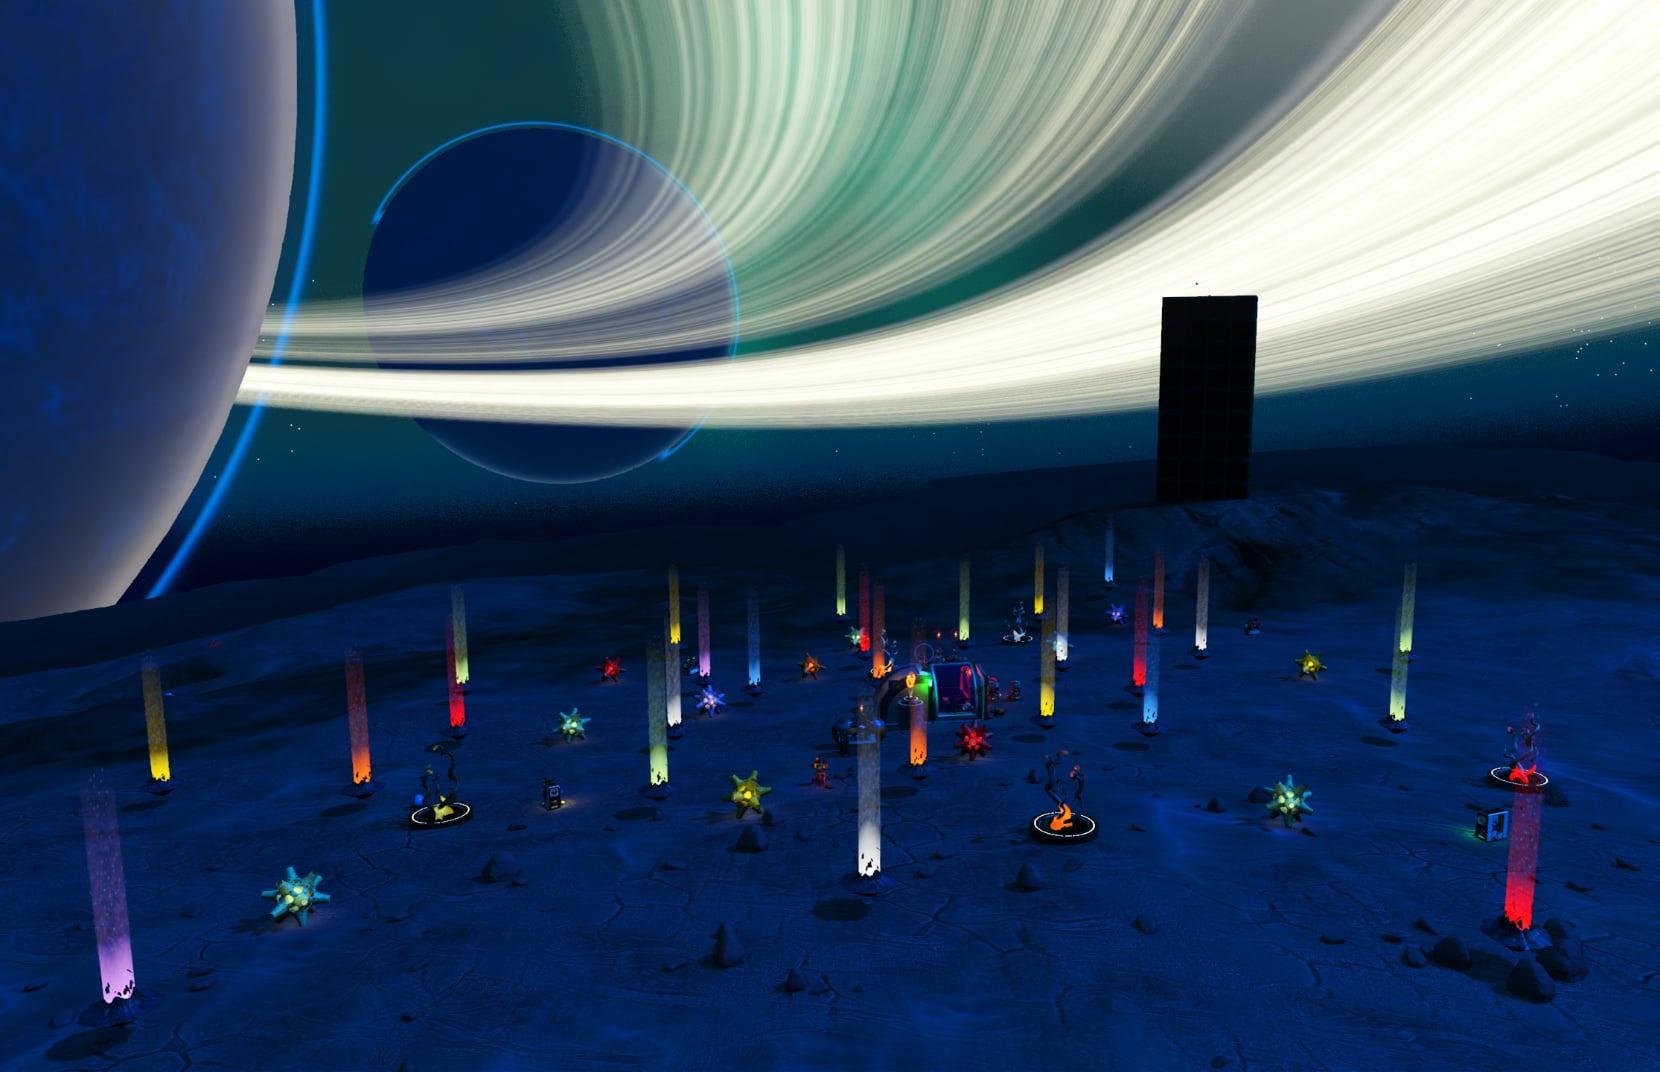 Tiny moon base at night with colorful lights all around it